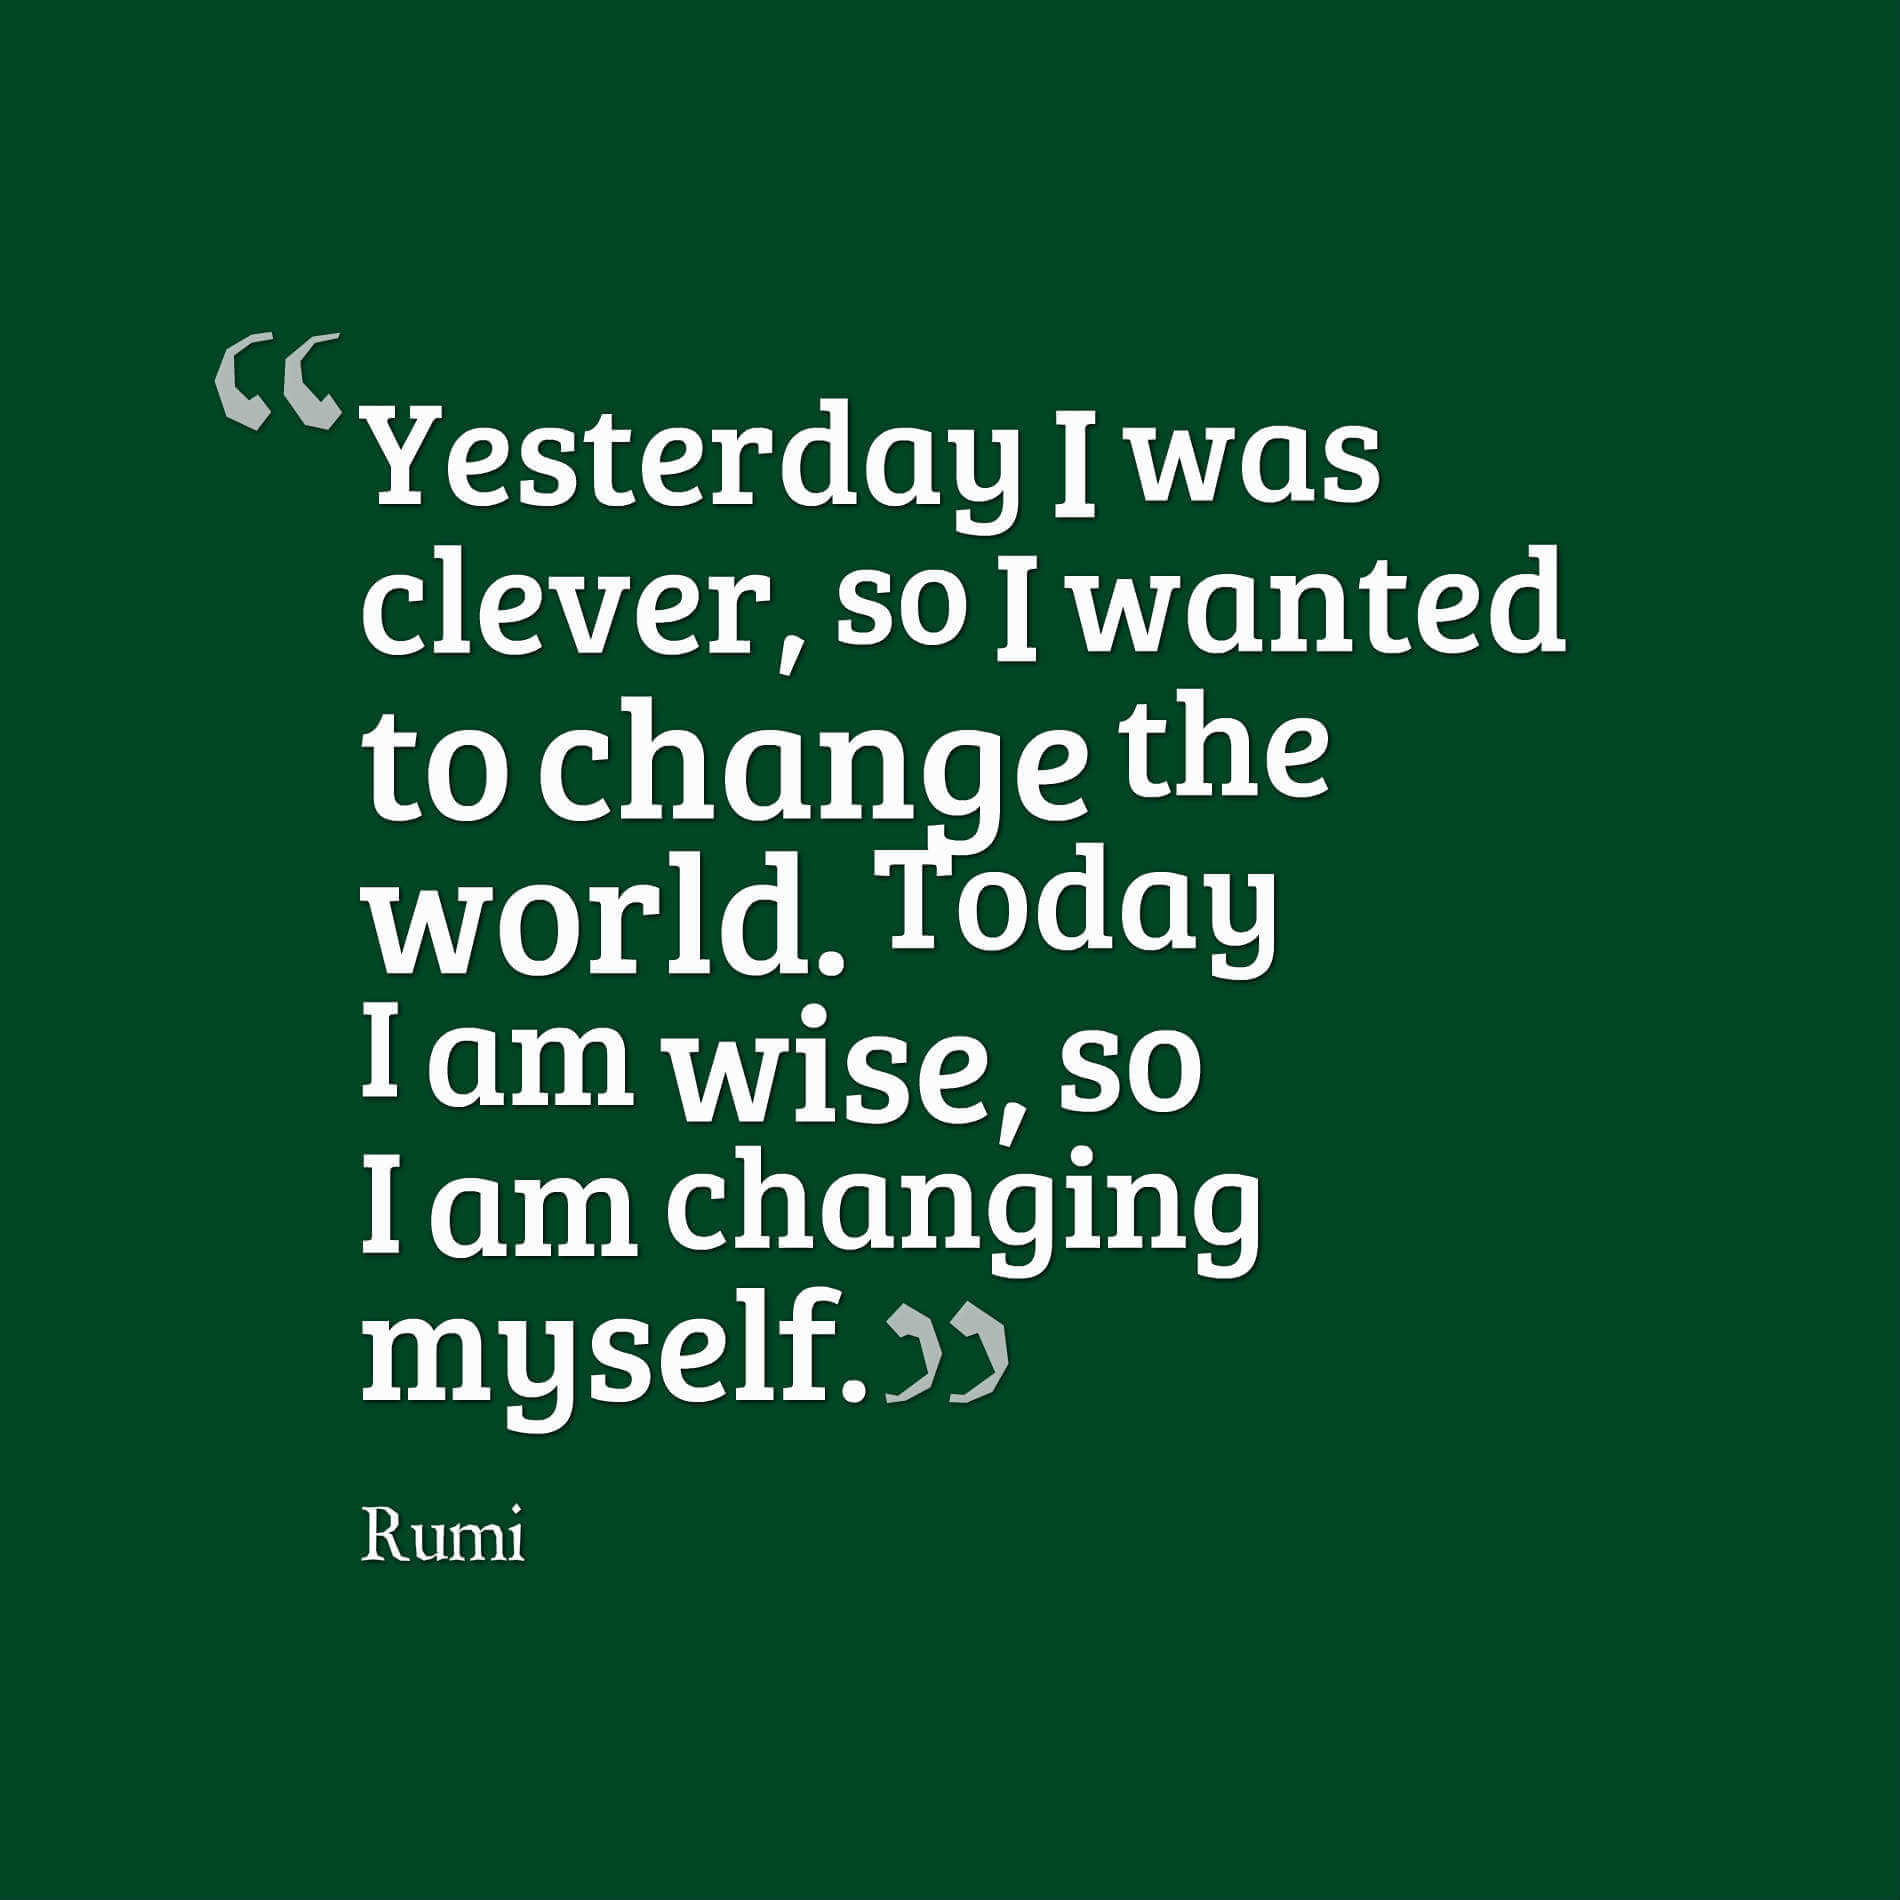 Yesterday I was clever, so I wanted to change the world. Today I am wise, so I am changing myself. - rumi quotes